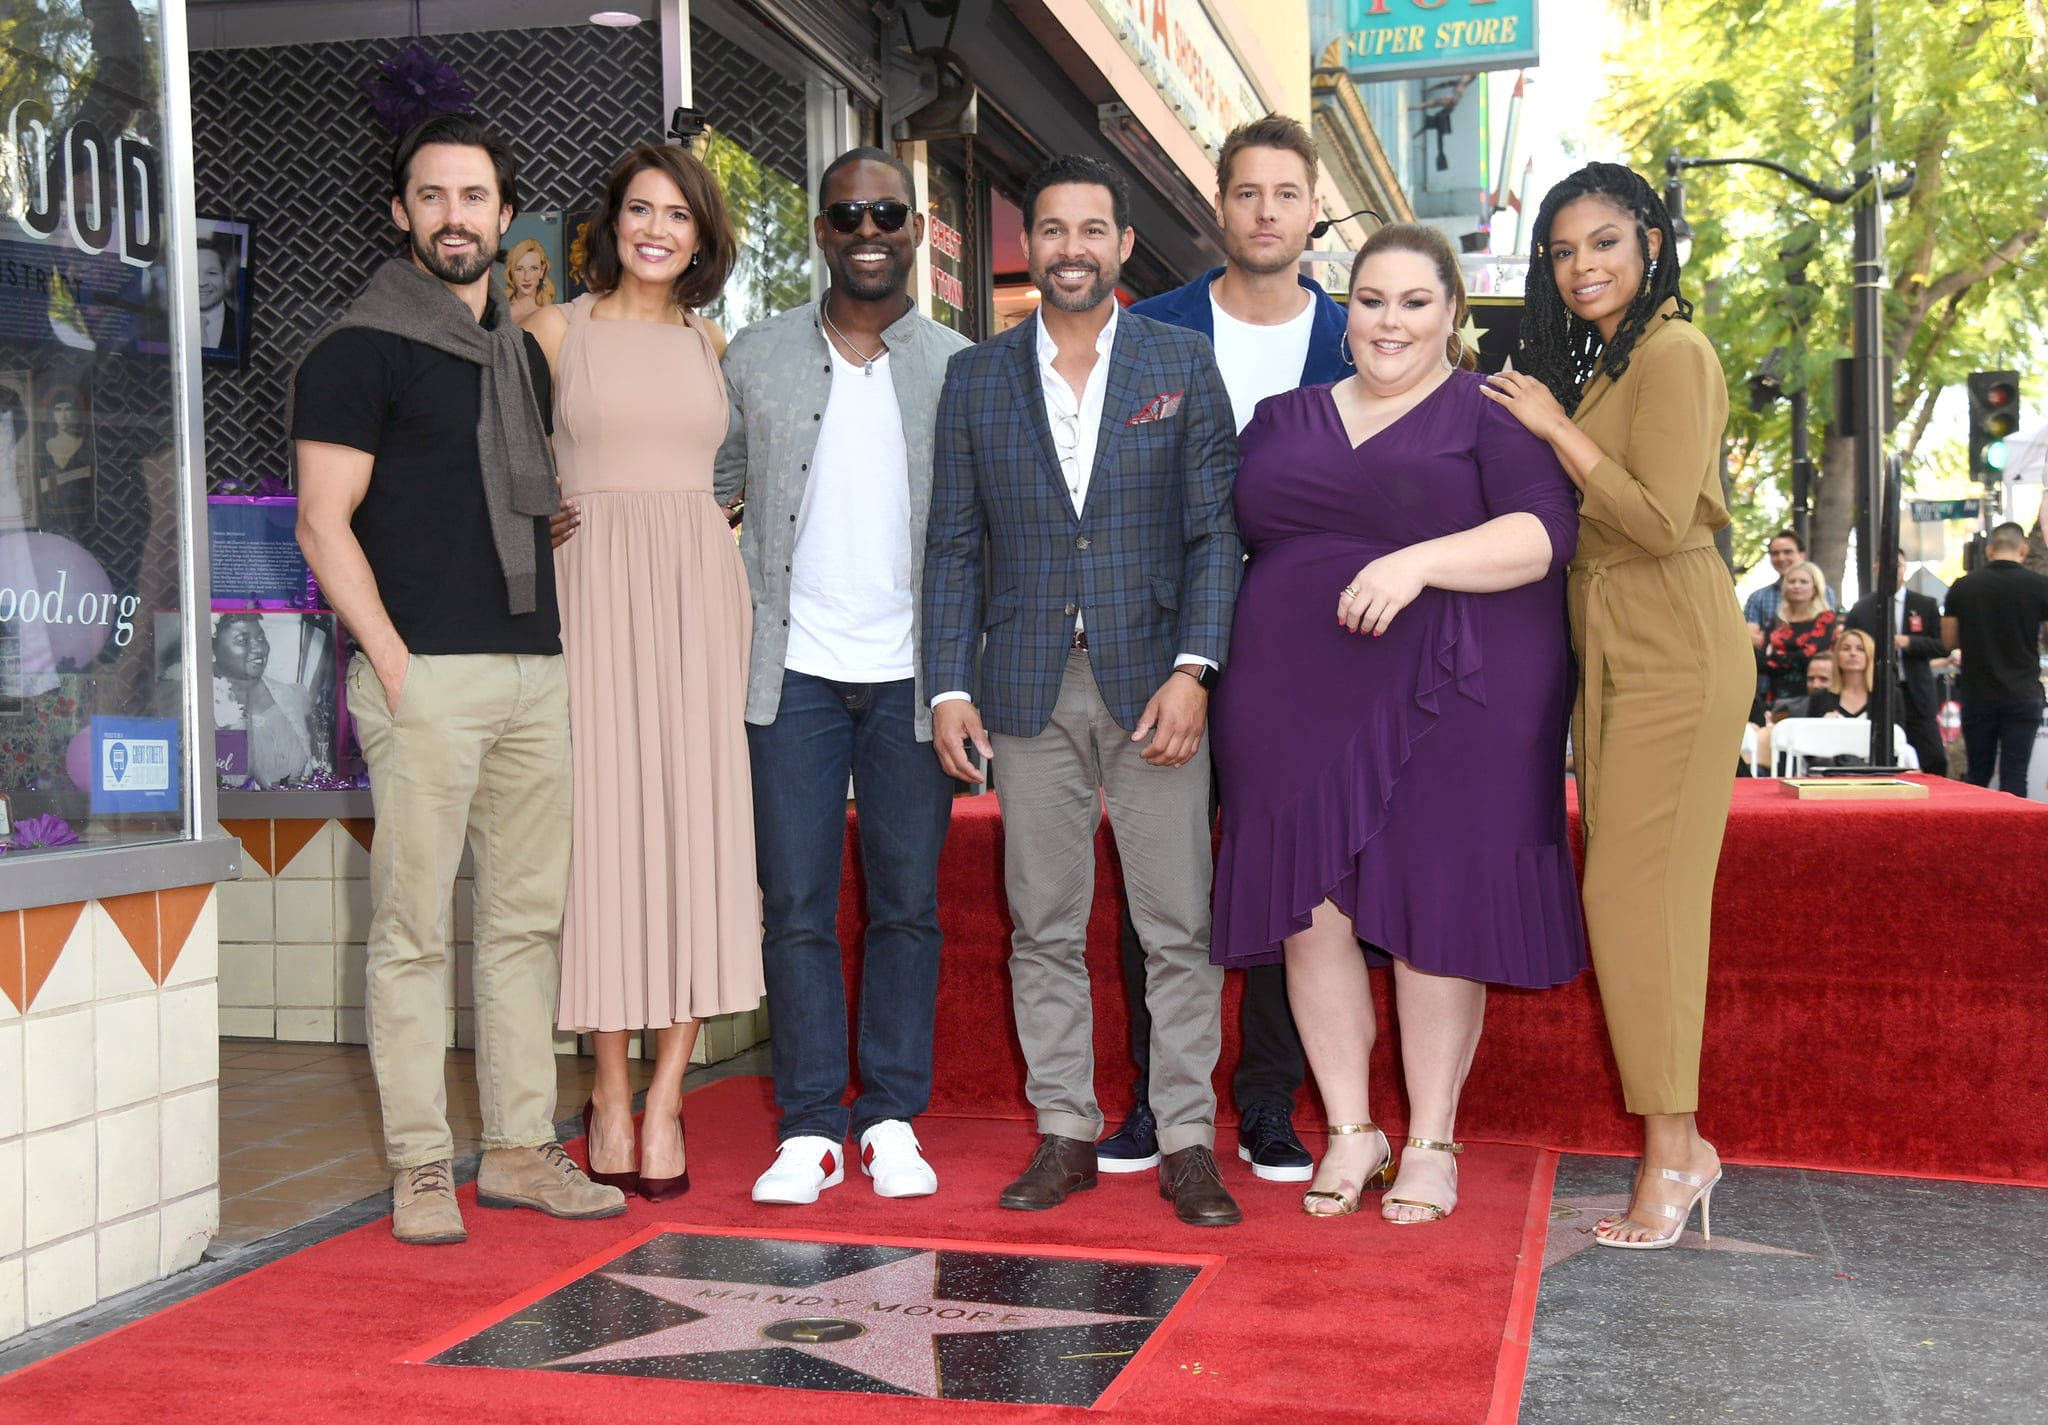 HOLLYWOOD, CALIFORNIA - MARCH 25: (L-R) Milo Ventimiglia, Mandy Moore, Sterling K. Brown, Jon Huertas, Justin Hartley, Chrissy Metz, and Susan Kelechi Watson attend a ceremony honouring Mandy Moore with a star on the Hollywood Walk Of Fame on March 25, 2019 in Hollywood, California. (Photo by Kevin Winter/Getty Images)